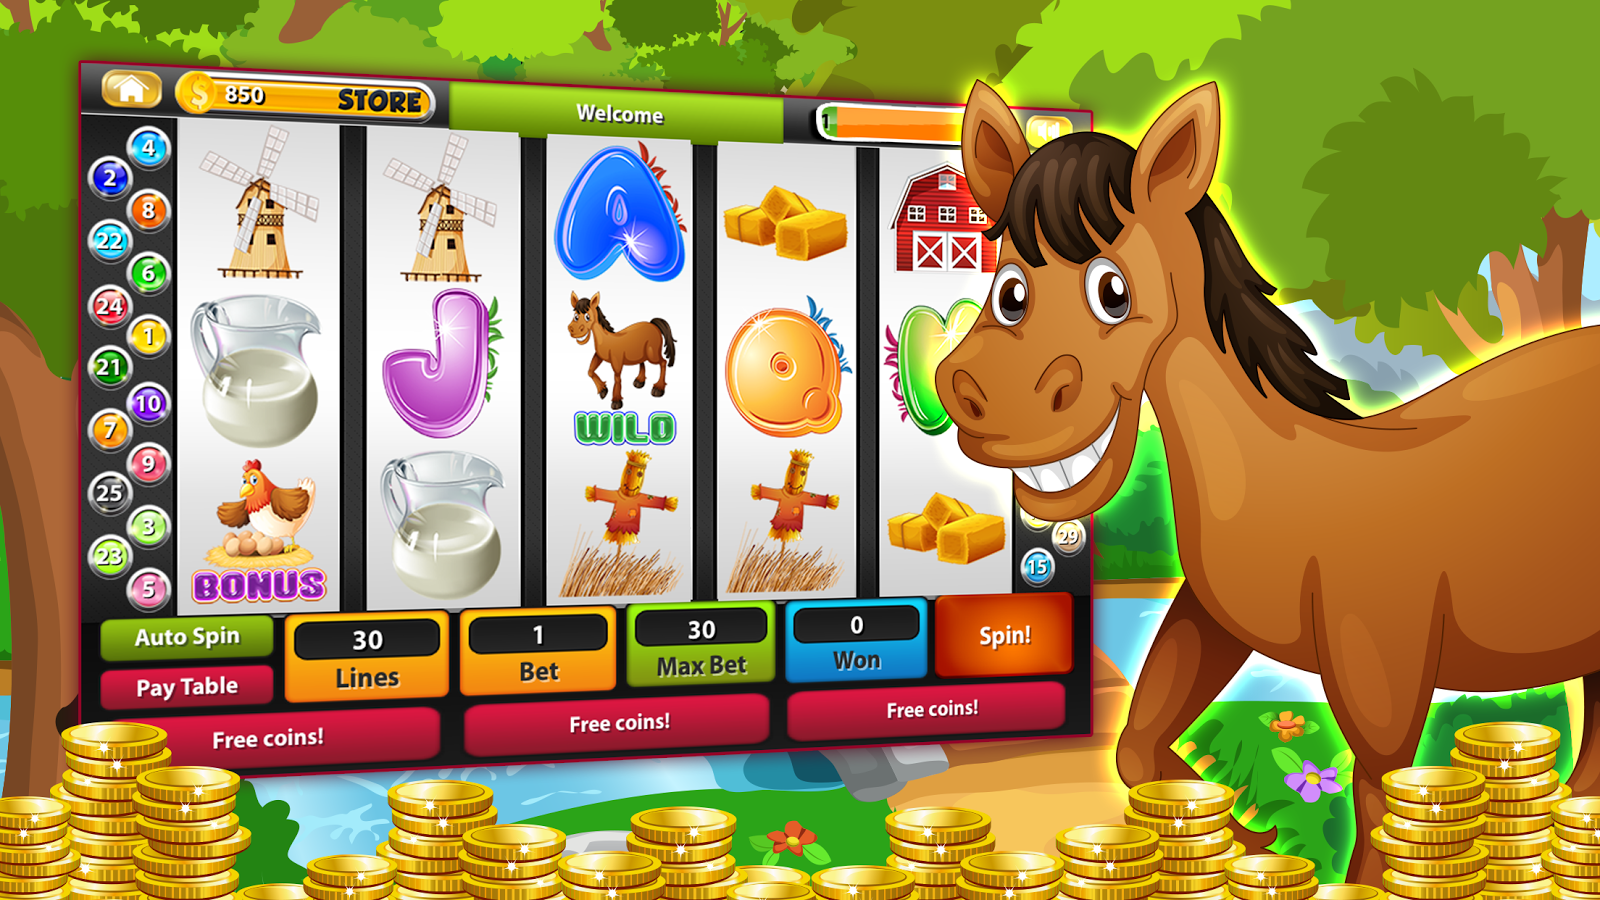 Sunny Farm Slots - Play Online for Free Instantly